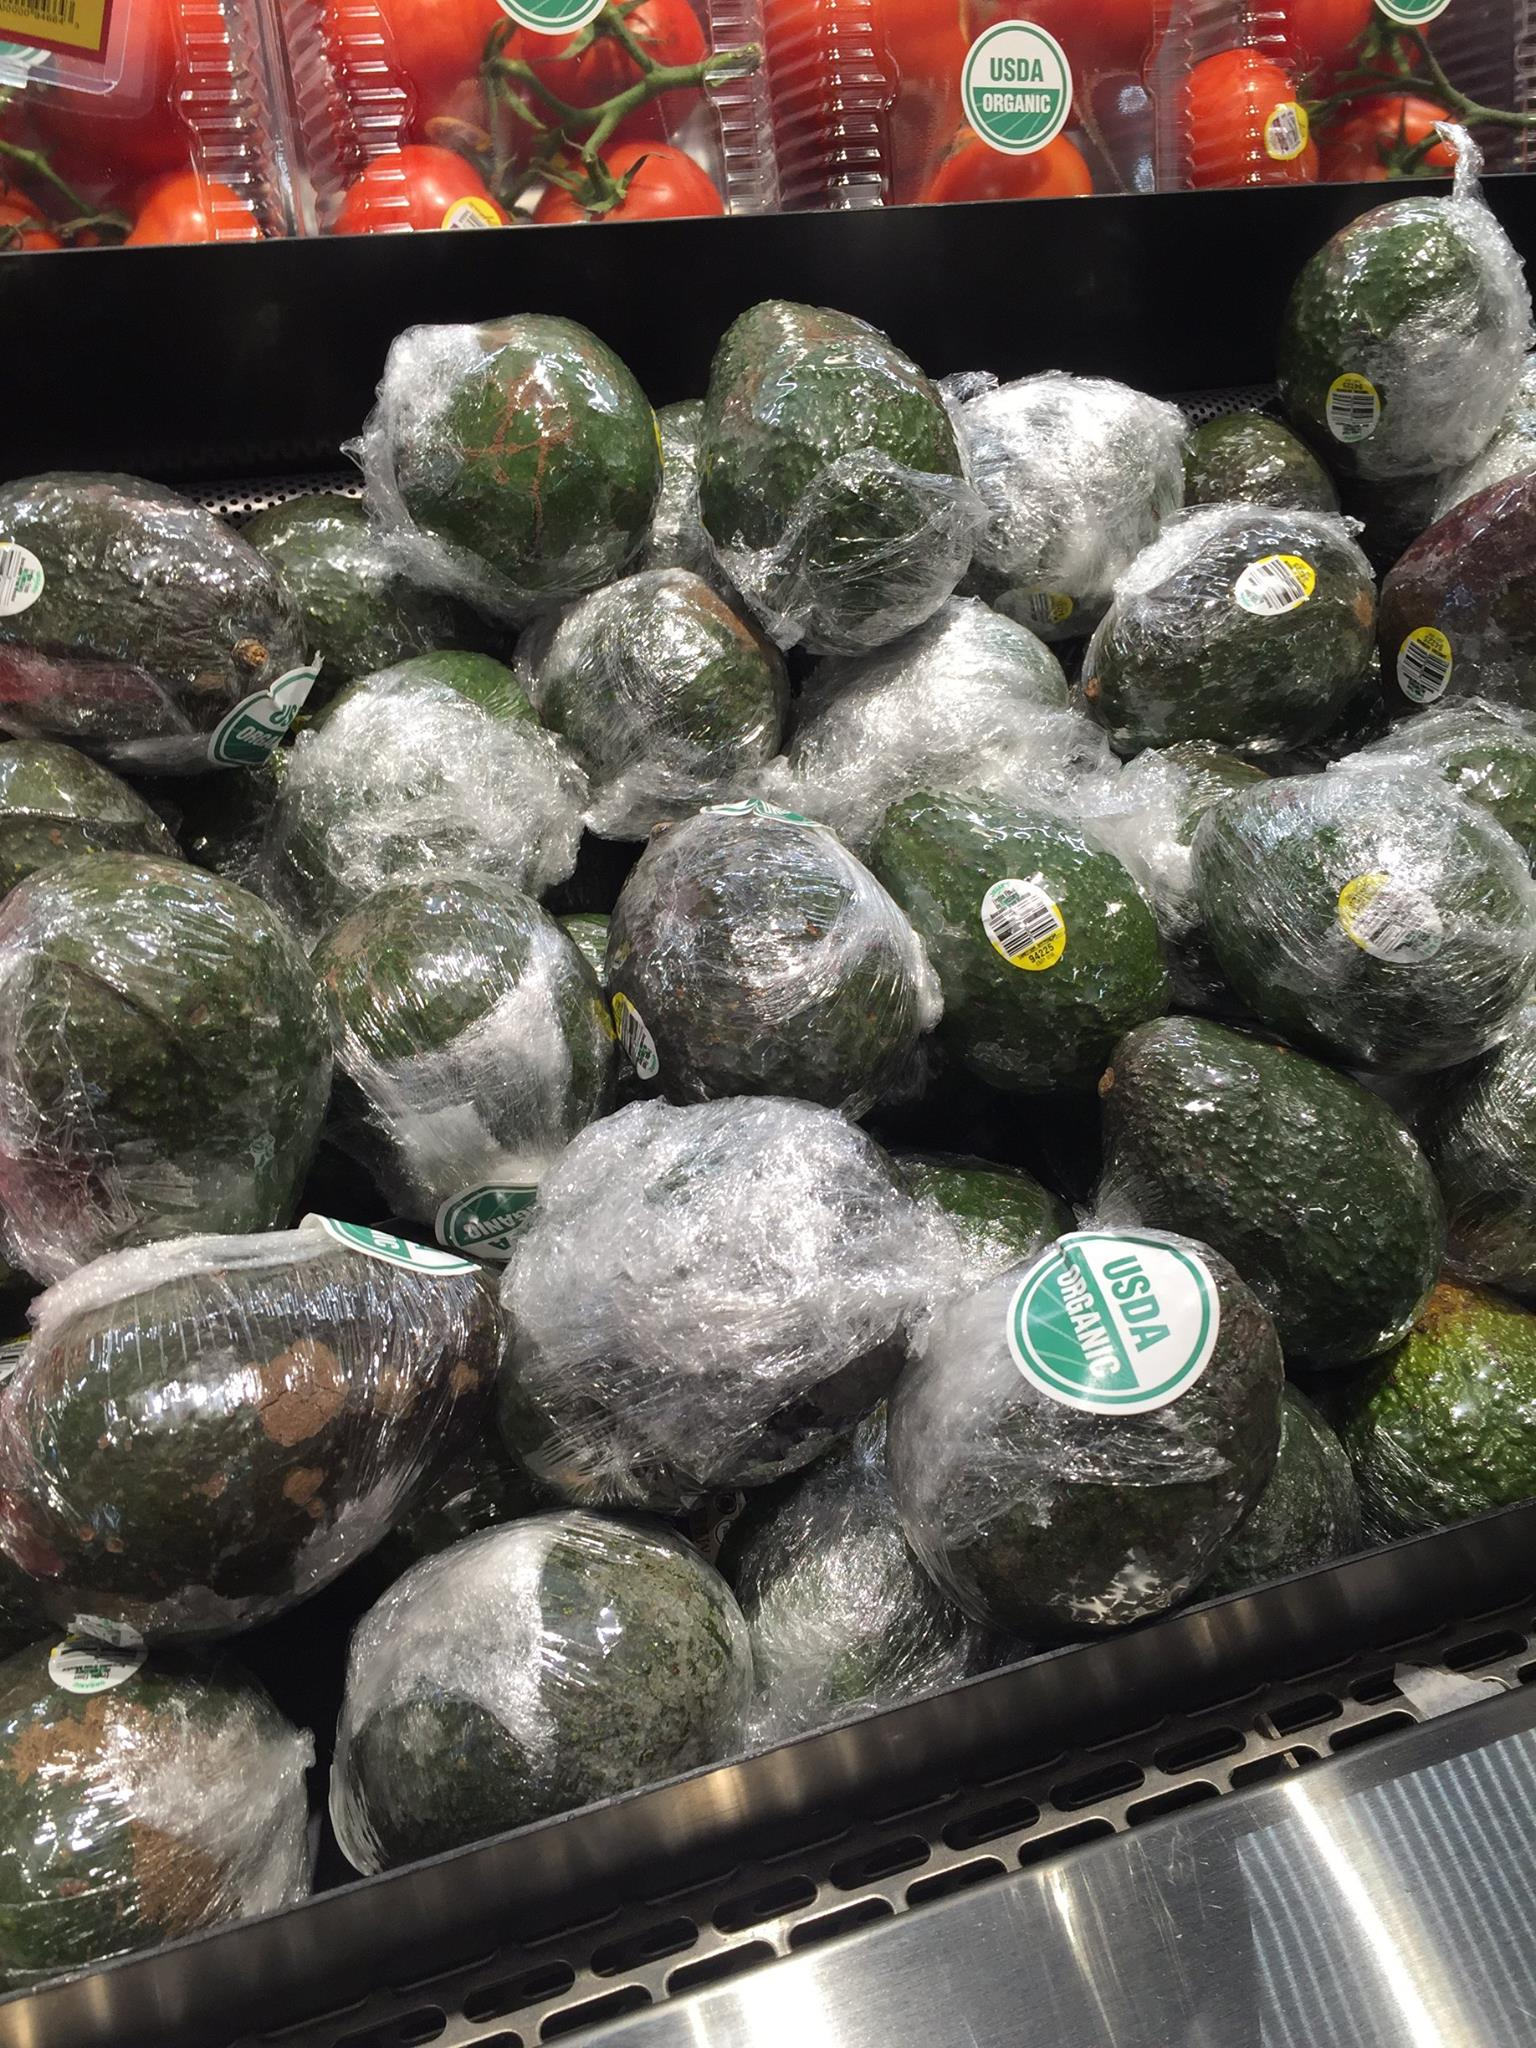 We are suffocating our produce in plastic